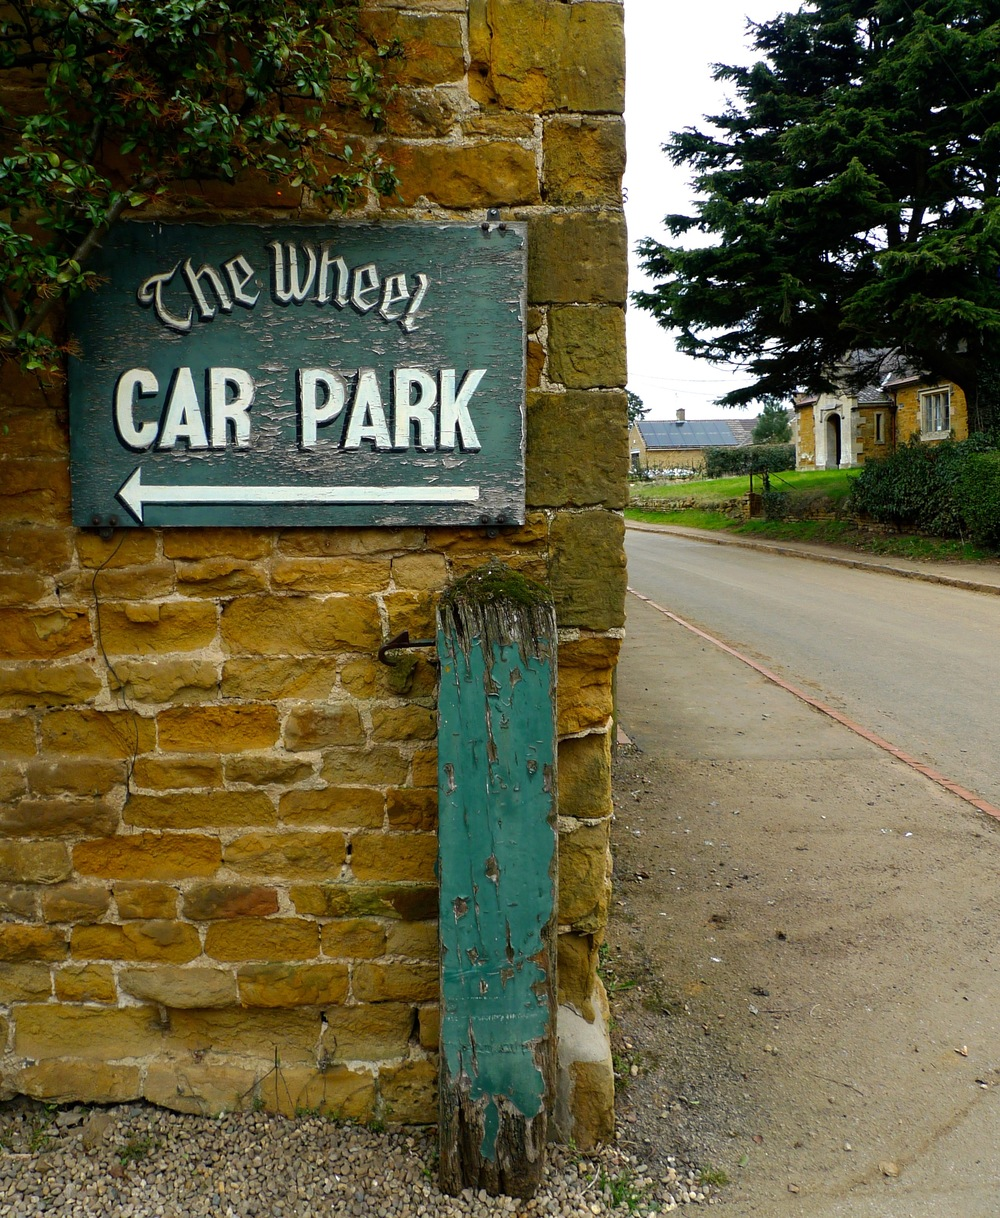 THE WHEEL INN CAR PARK SIGN